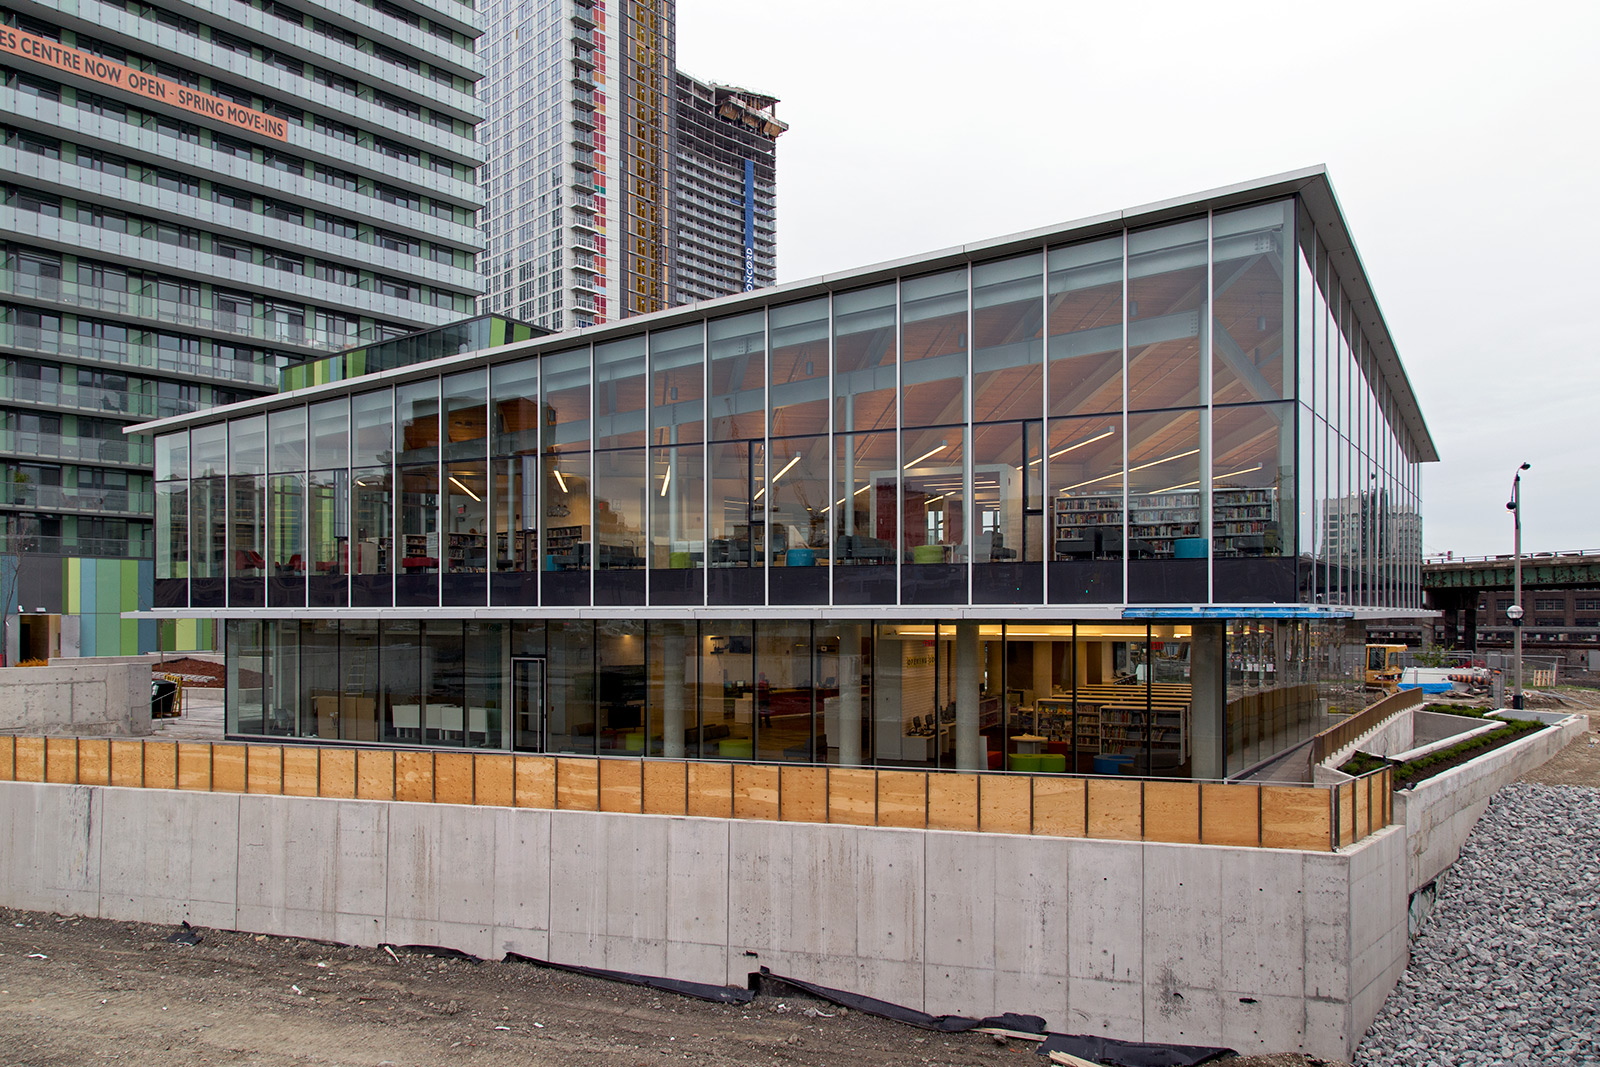 20140521. The Fort York Branch, the 99th Toronto Public Library is almost ready (Bathurst St and Fort York Blvd).